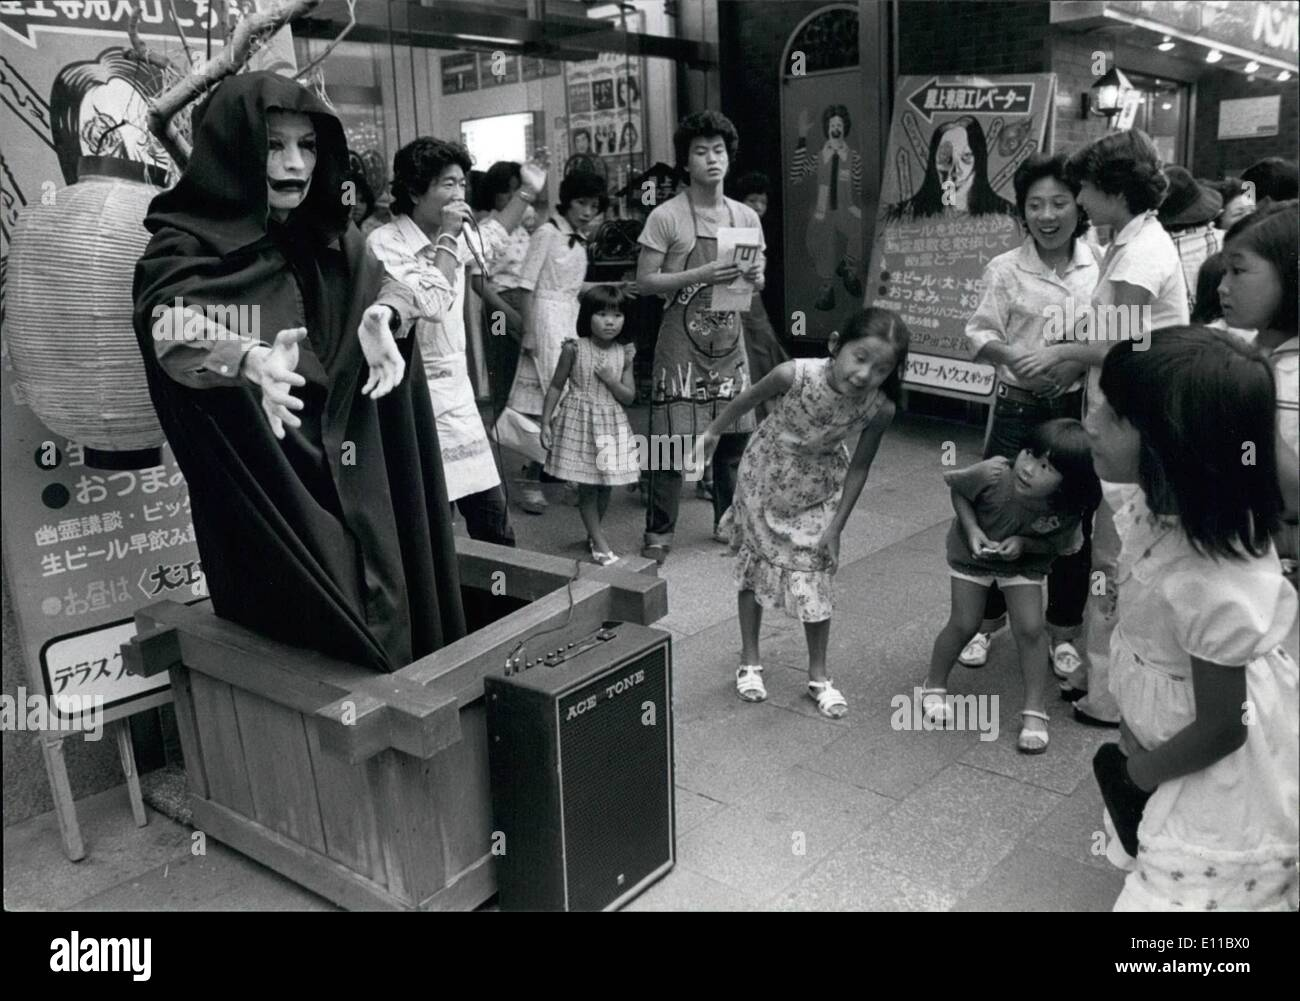 Aug. 08, 1976 - Eerie figures keep Japanese coll in summer heat.: Eerie figures such as ghost, witches, Frankenstein, or Dracula, appear to make the Japanese shiver, and serves to keep them cool in the torrid summer weather. Television feature ghost plays, and magazines print blood-chilling stories, its all part of an old Japanese custom. Outside a beer hall in Ginza, Tokyothe proprietor has placed a witch-like figure to remind passers-by that a nice cold beer is better than shivering by looking at a witch. Children are scared as the witch moves its hands and head. - Stock Image